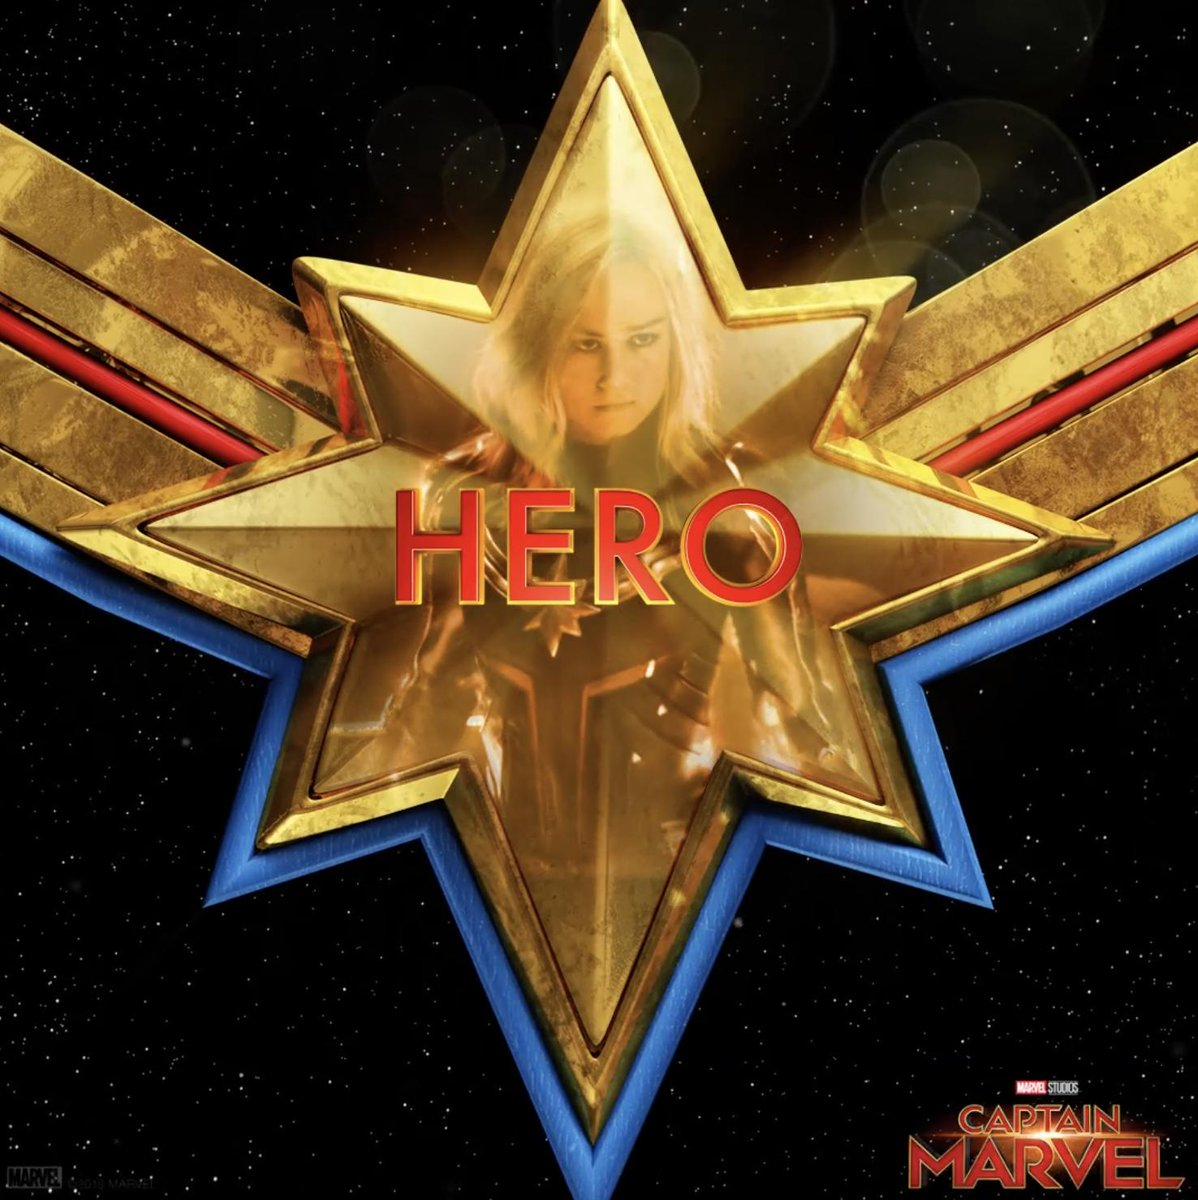 """""""I know a renegade soldier when I see one."""" Marvel Studios' #CaptainMarvel is in theaters March 8. Get tickets now: http://www.Fandango.com/CaptainMarvel"""